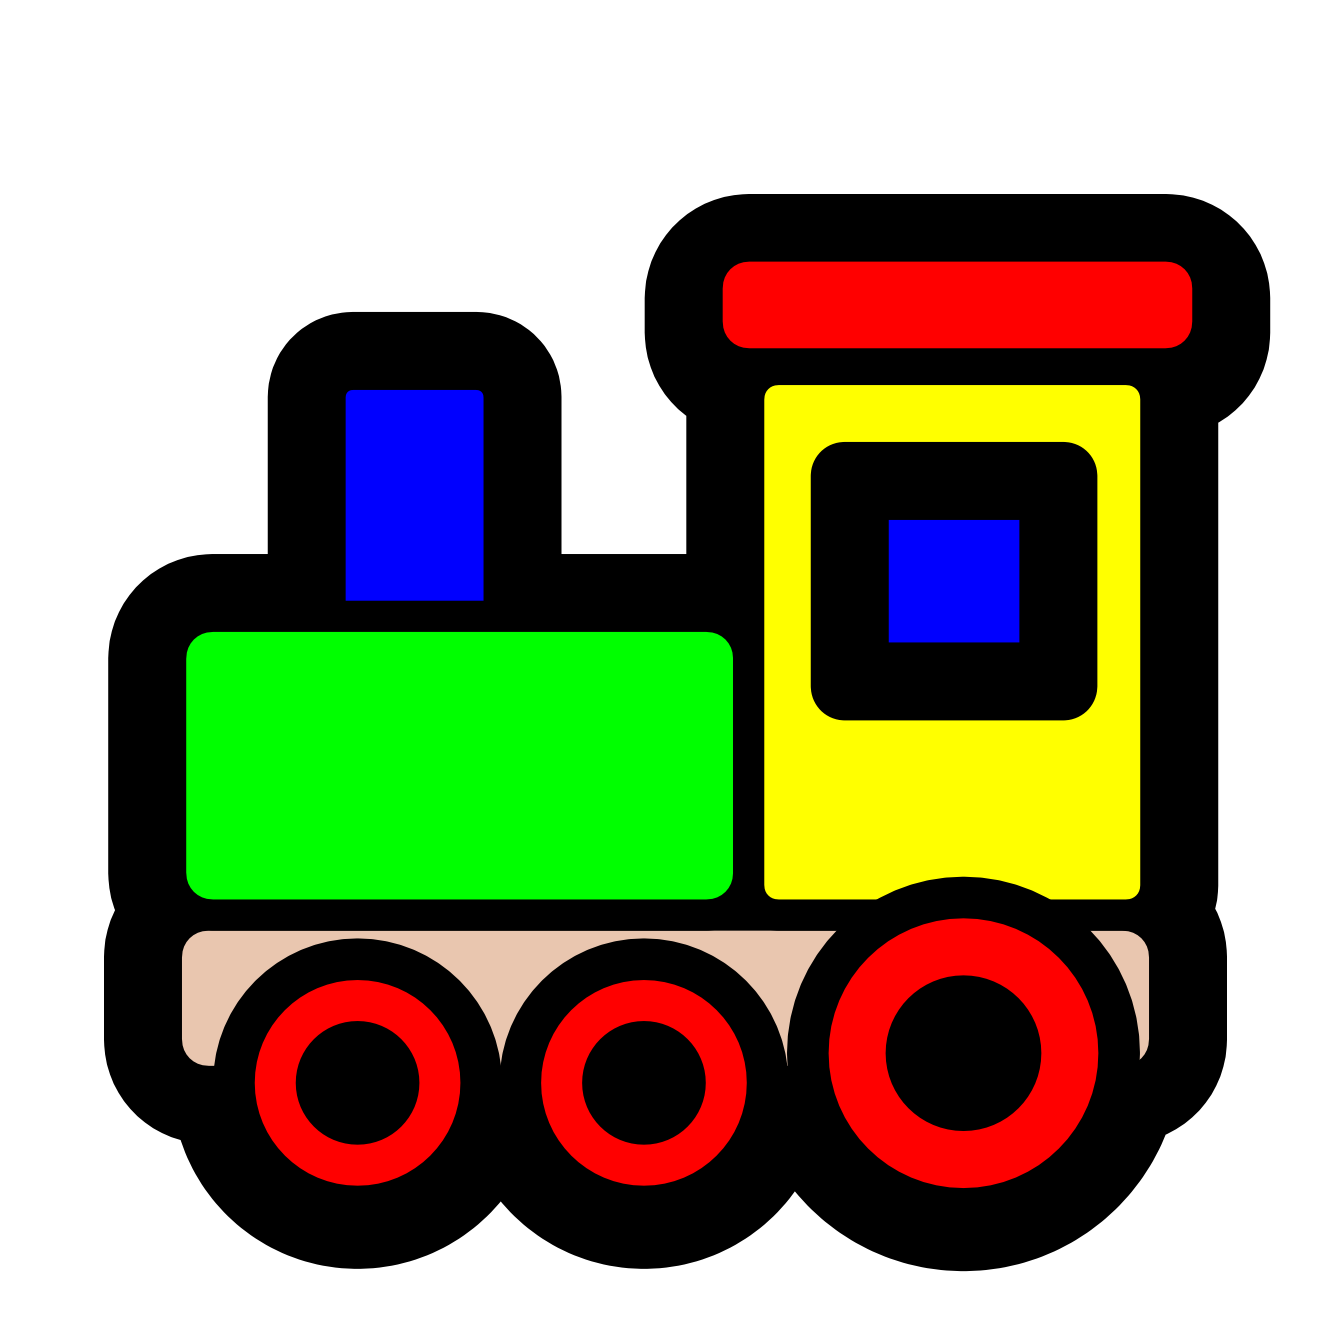 Toy clipart simple. Free images of trains